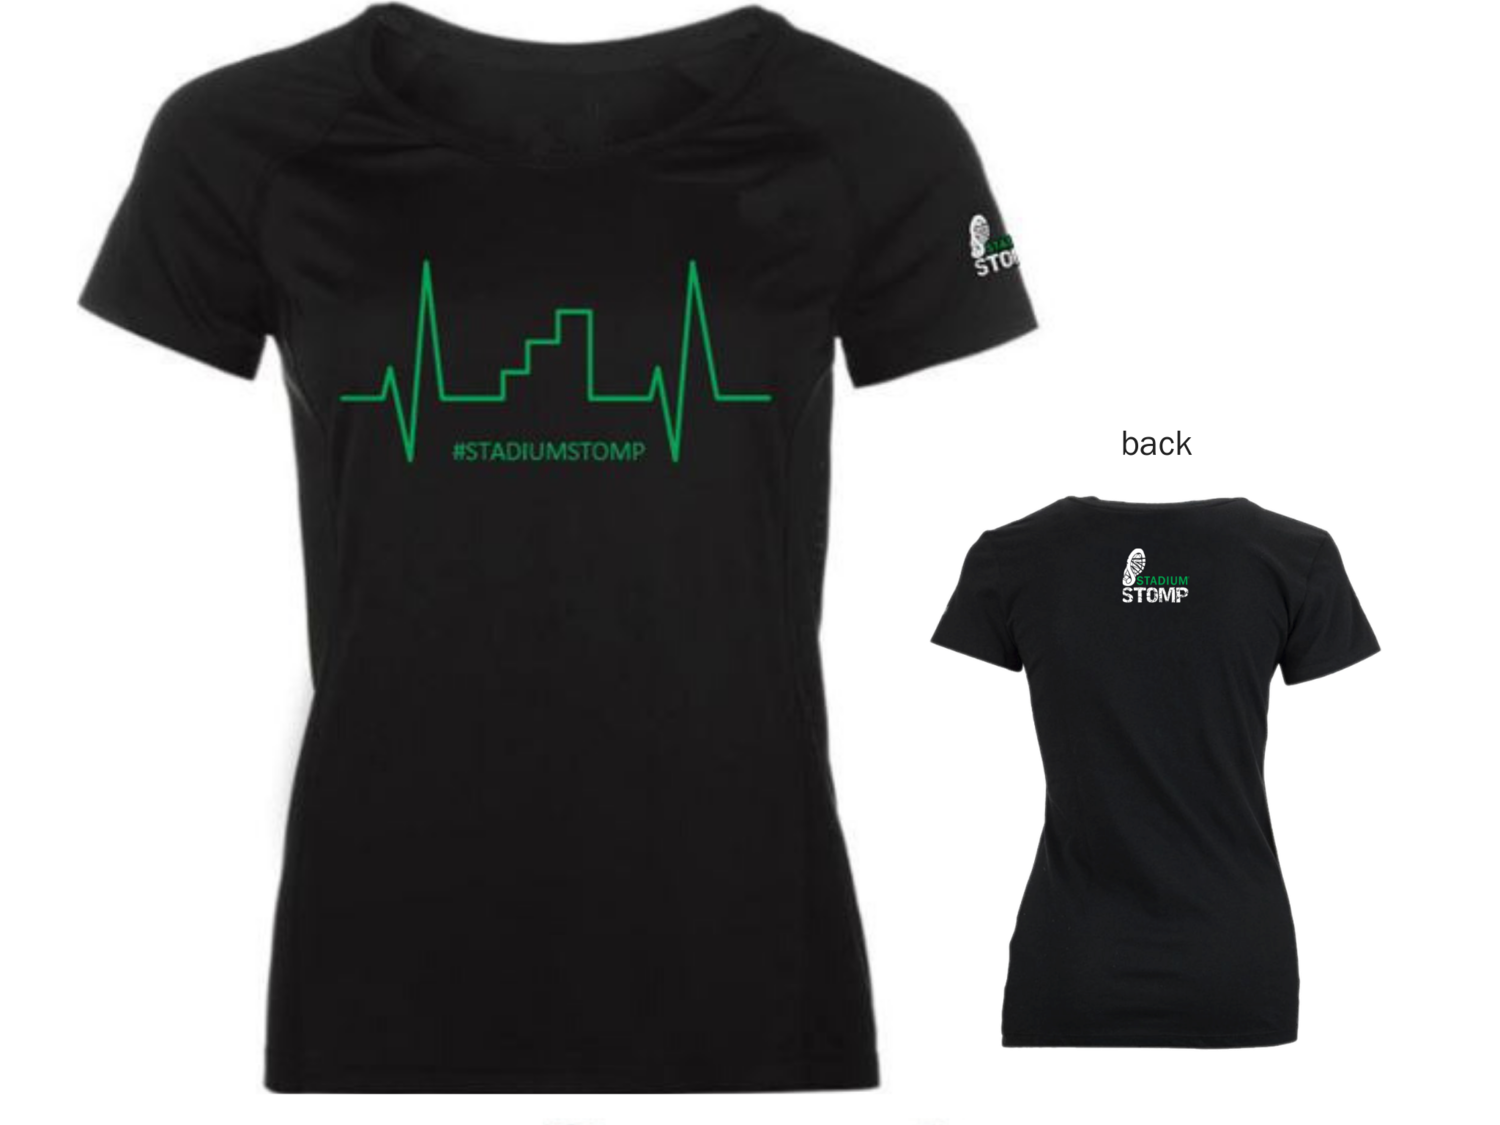 LARGE - Women's Heart Beat t-shirt